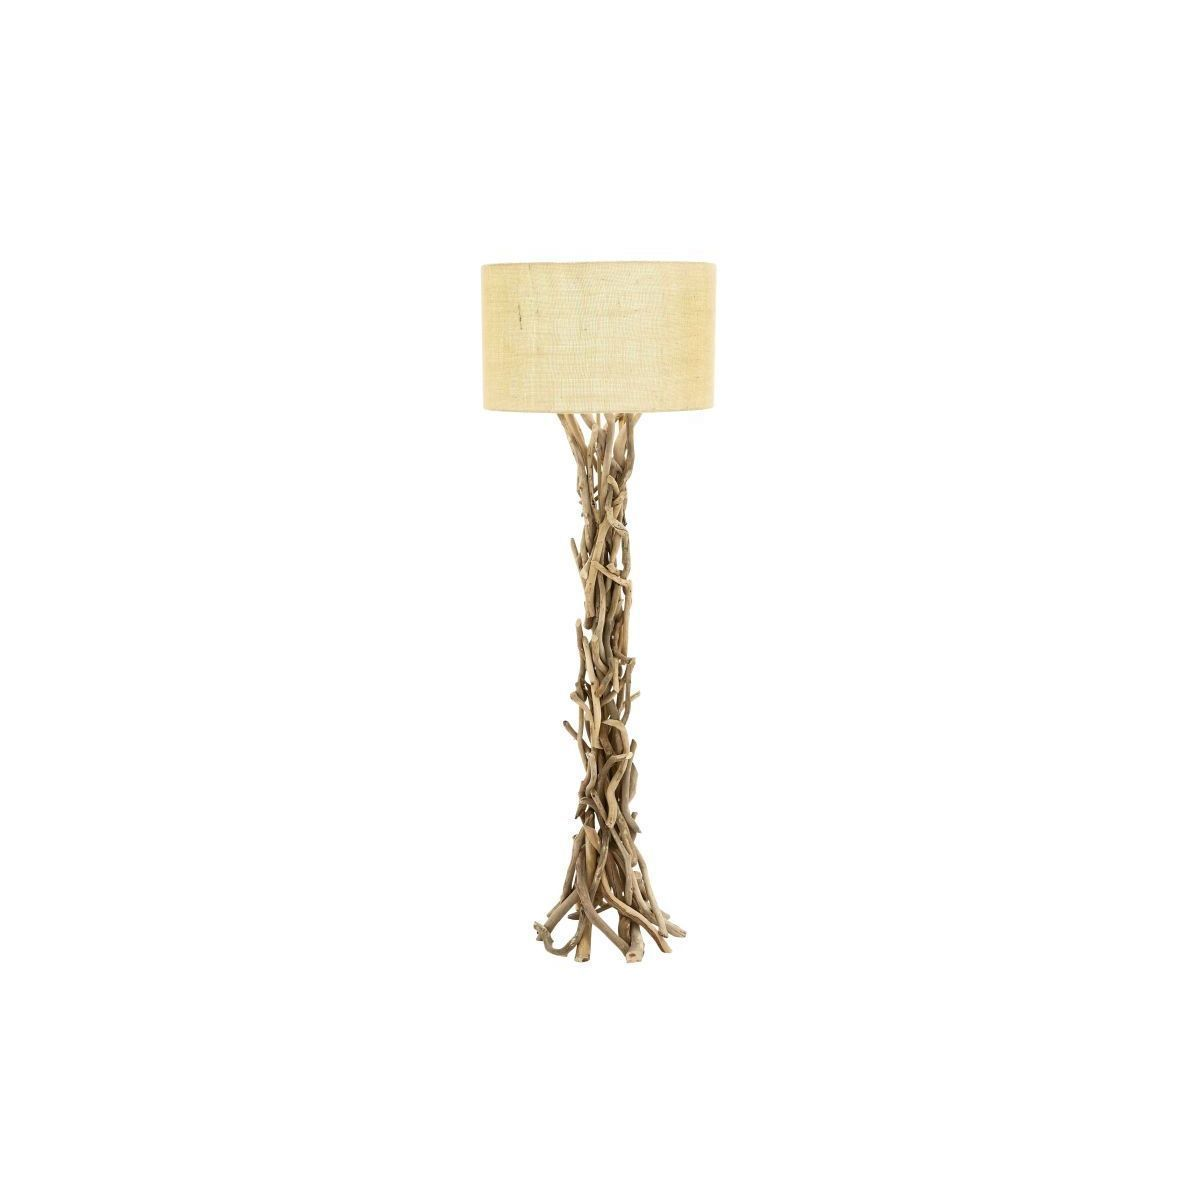 driftwood of lamps lamp floor luxury unique ideas